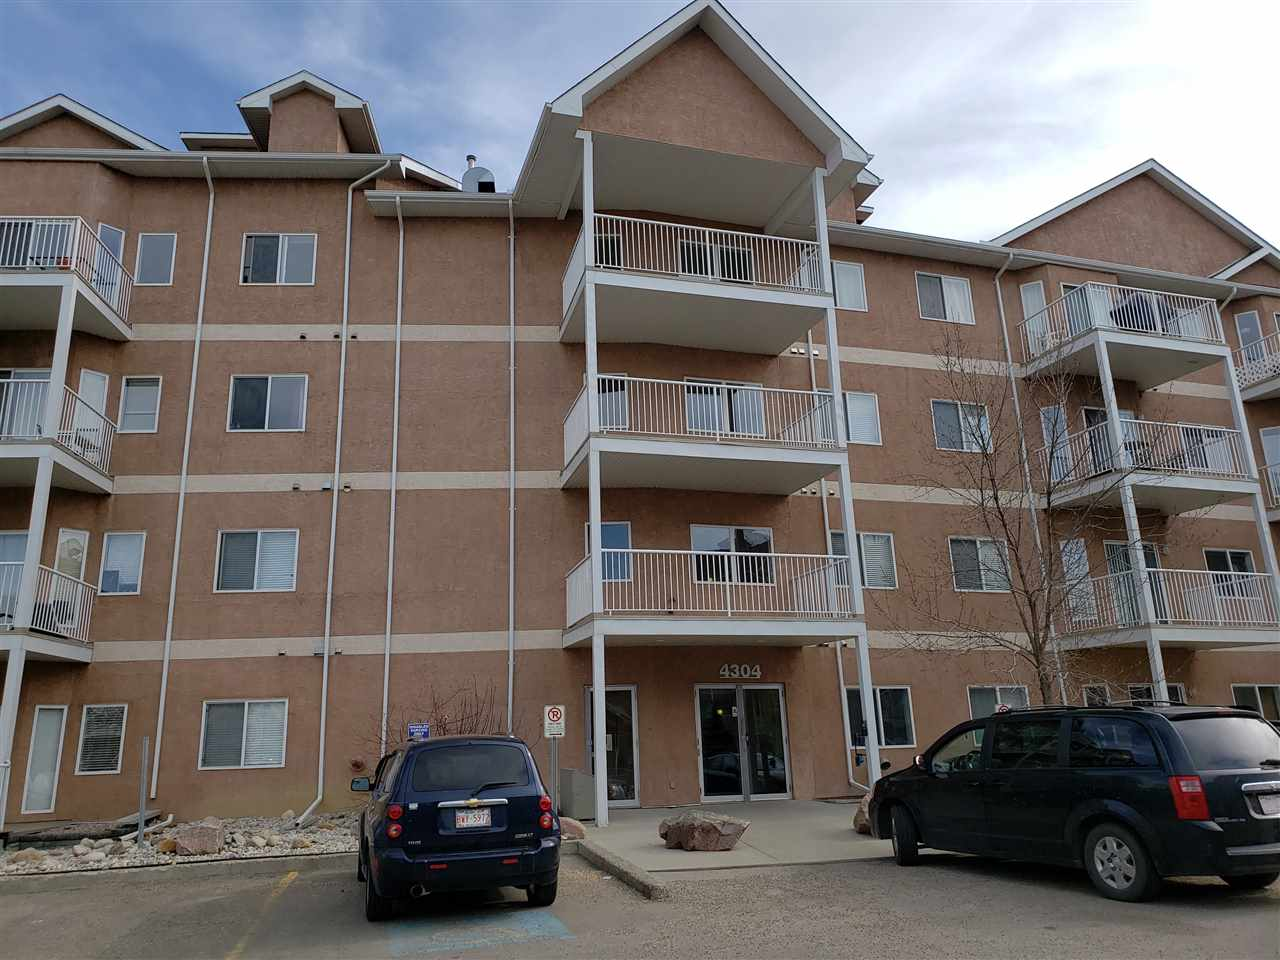 Large open concept one bedroom condo in Clareview, underground heated parking, close to all amenities and the LRT station. Foreclosure, schedule A must be part of all offers.